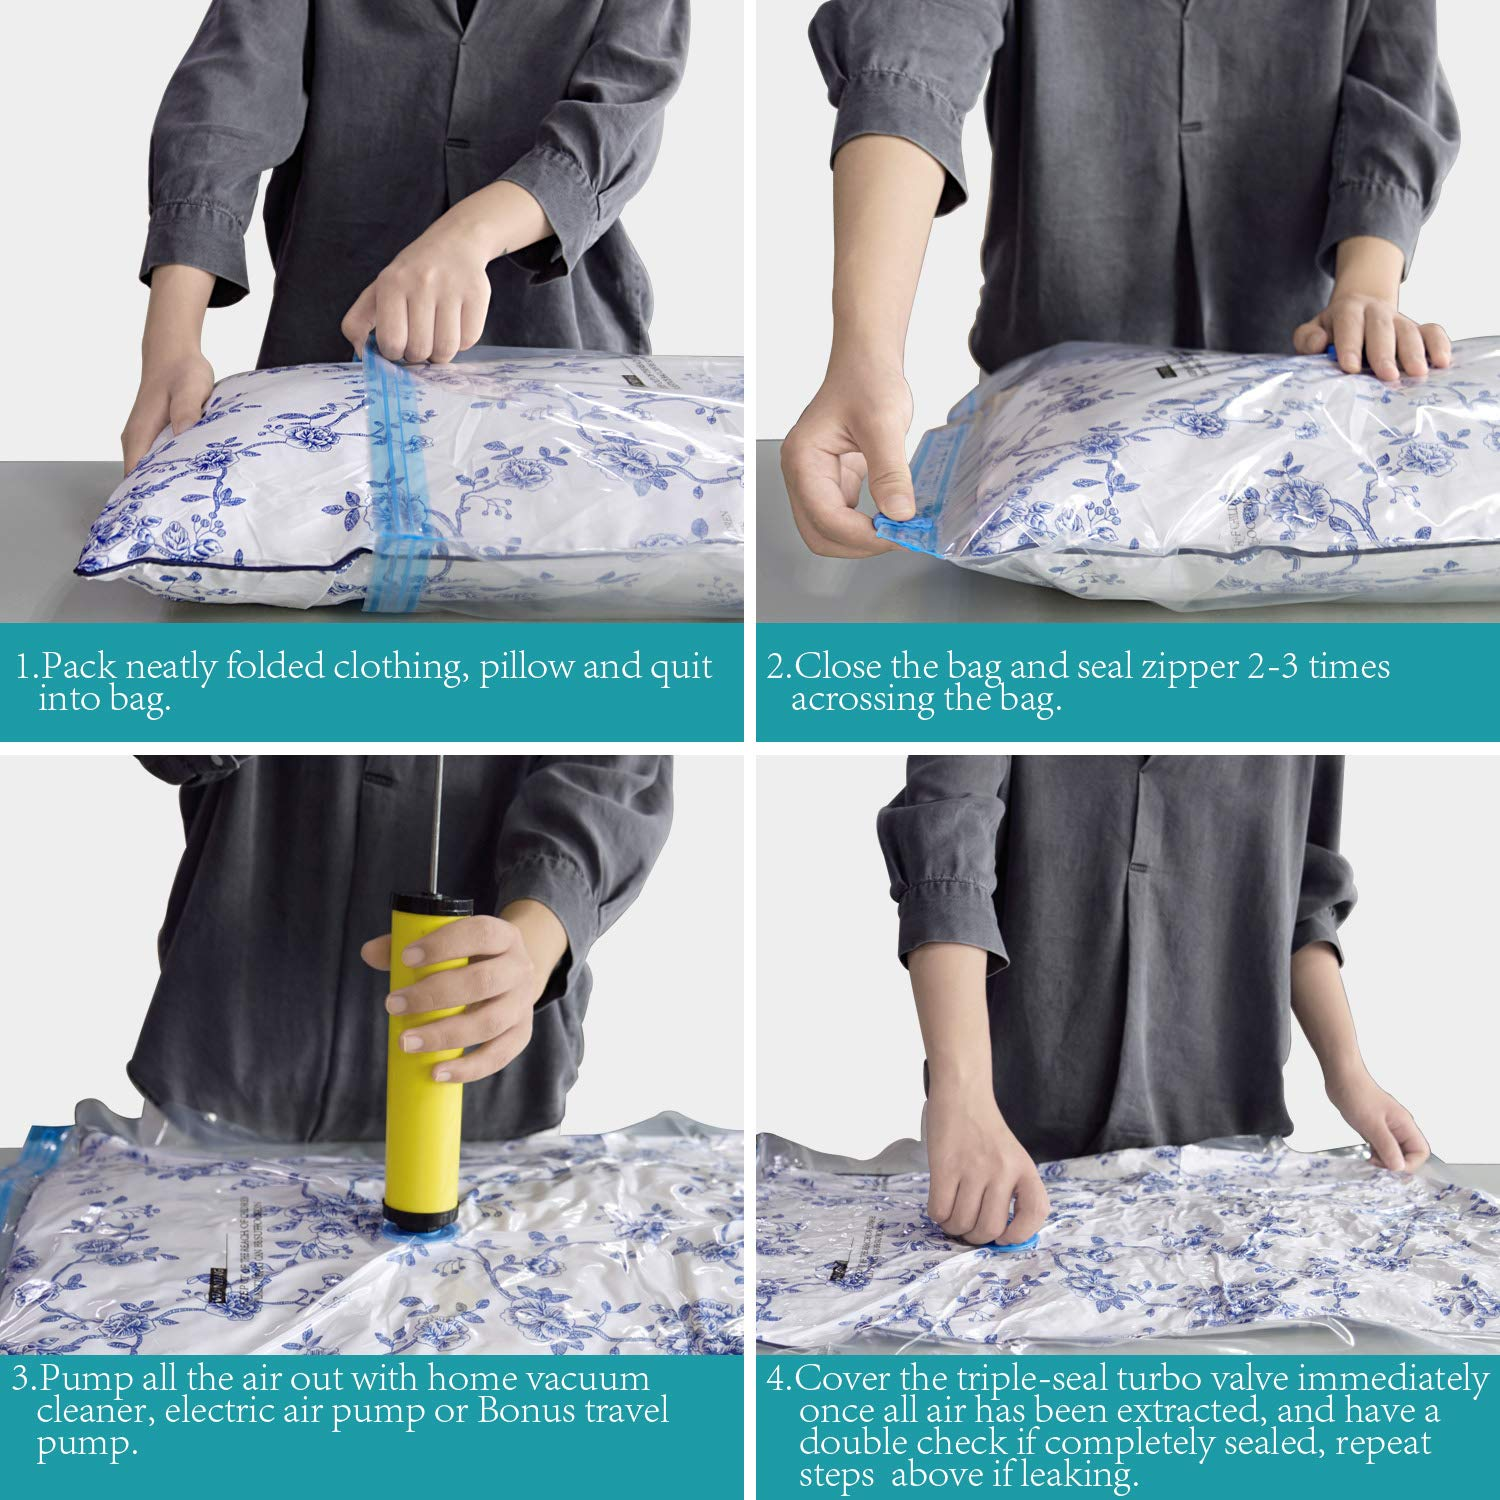 3 x Jumbo, 3 x L, 3 x M XUTAI Travel Vacuum Storage Bags for Clothes Comforters Blankets Mattress Pillows with Pump Space Saver Bag